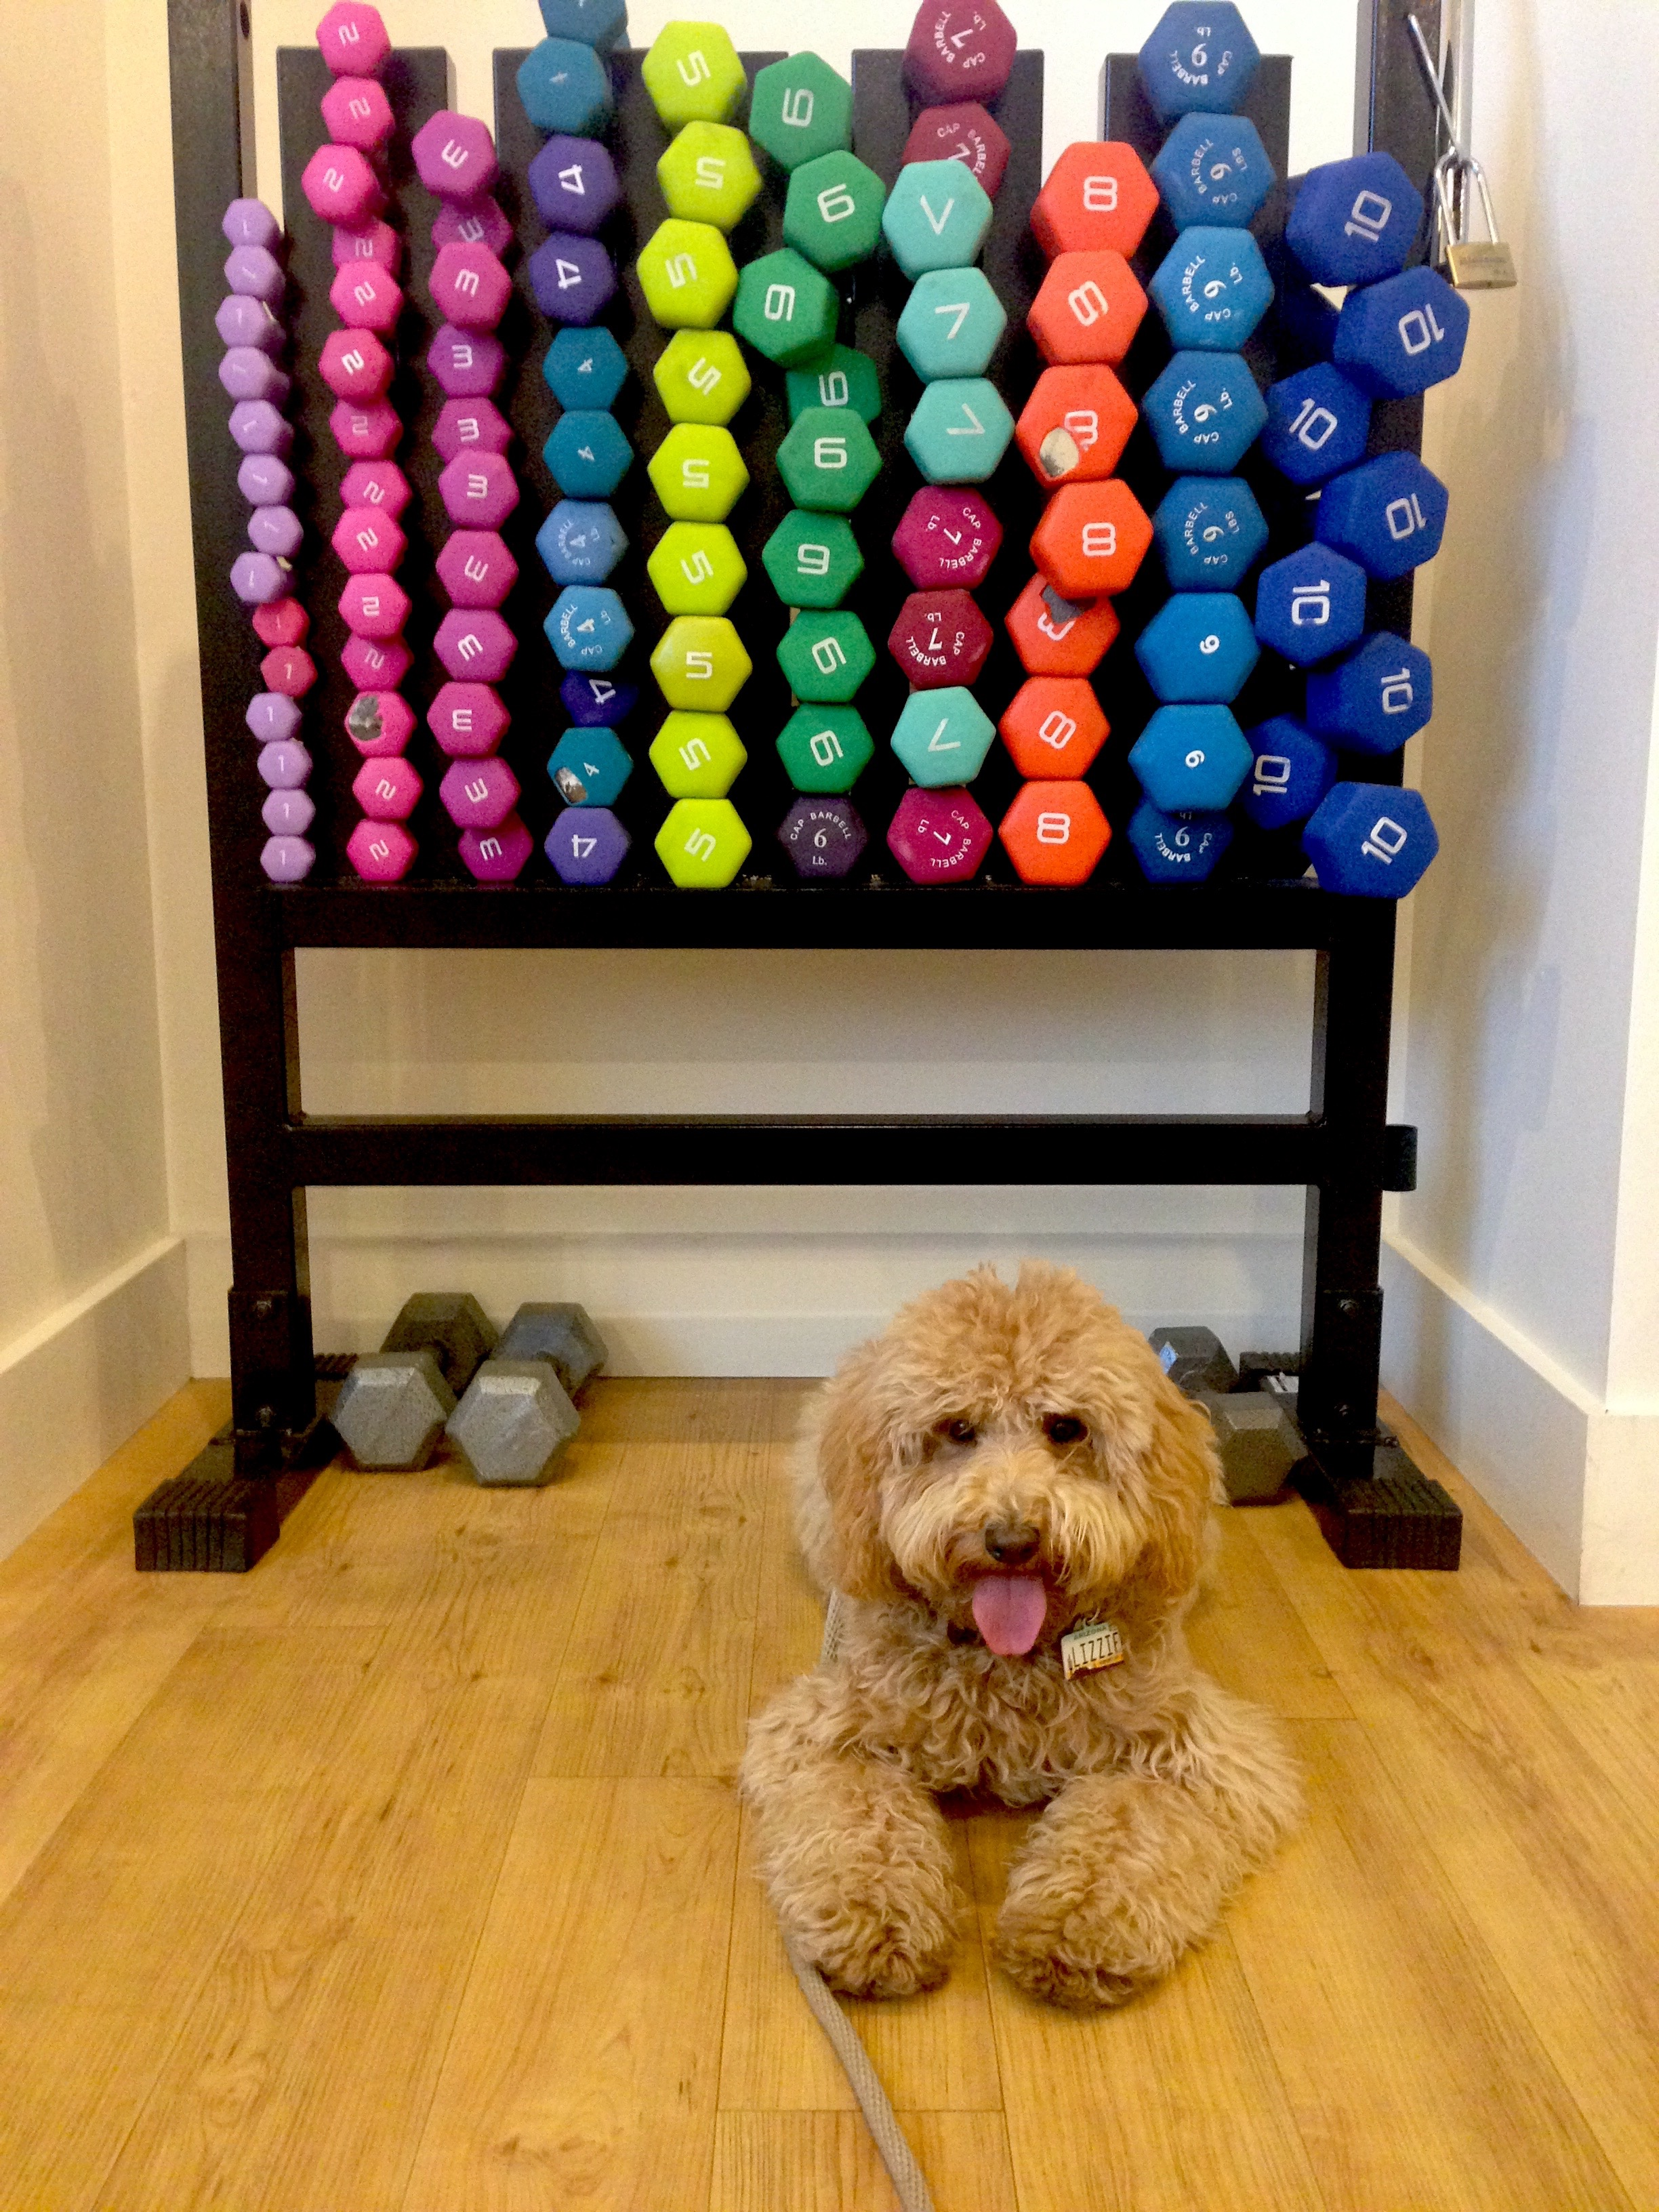 On our second visit, we arrived early enough for Lizzie to explore a bit more and enjoy various athletic sniffs like this weight set at The Core at LaEncantada.